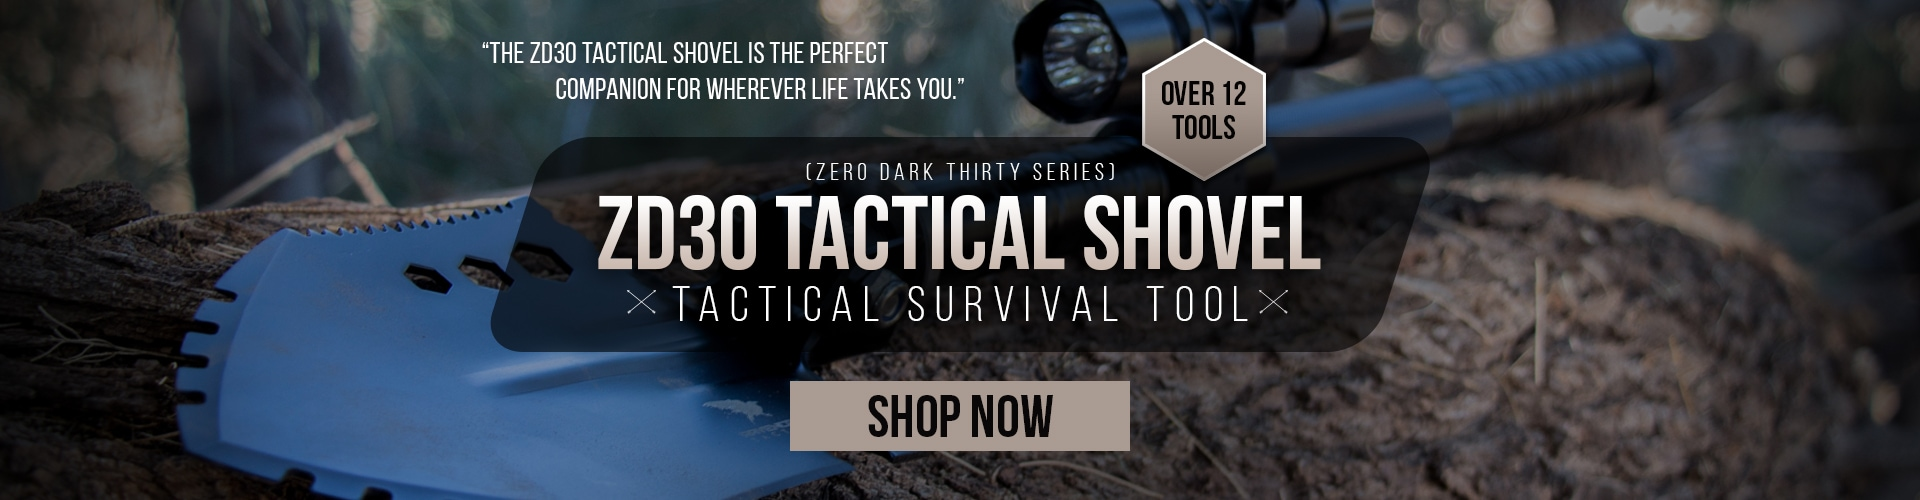 RavenCrest Tactical ZD30 Tactical Shovel